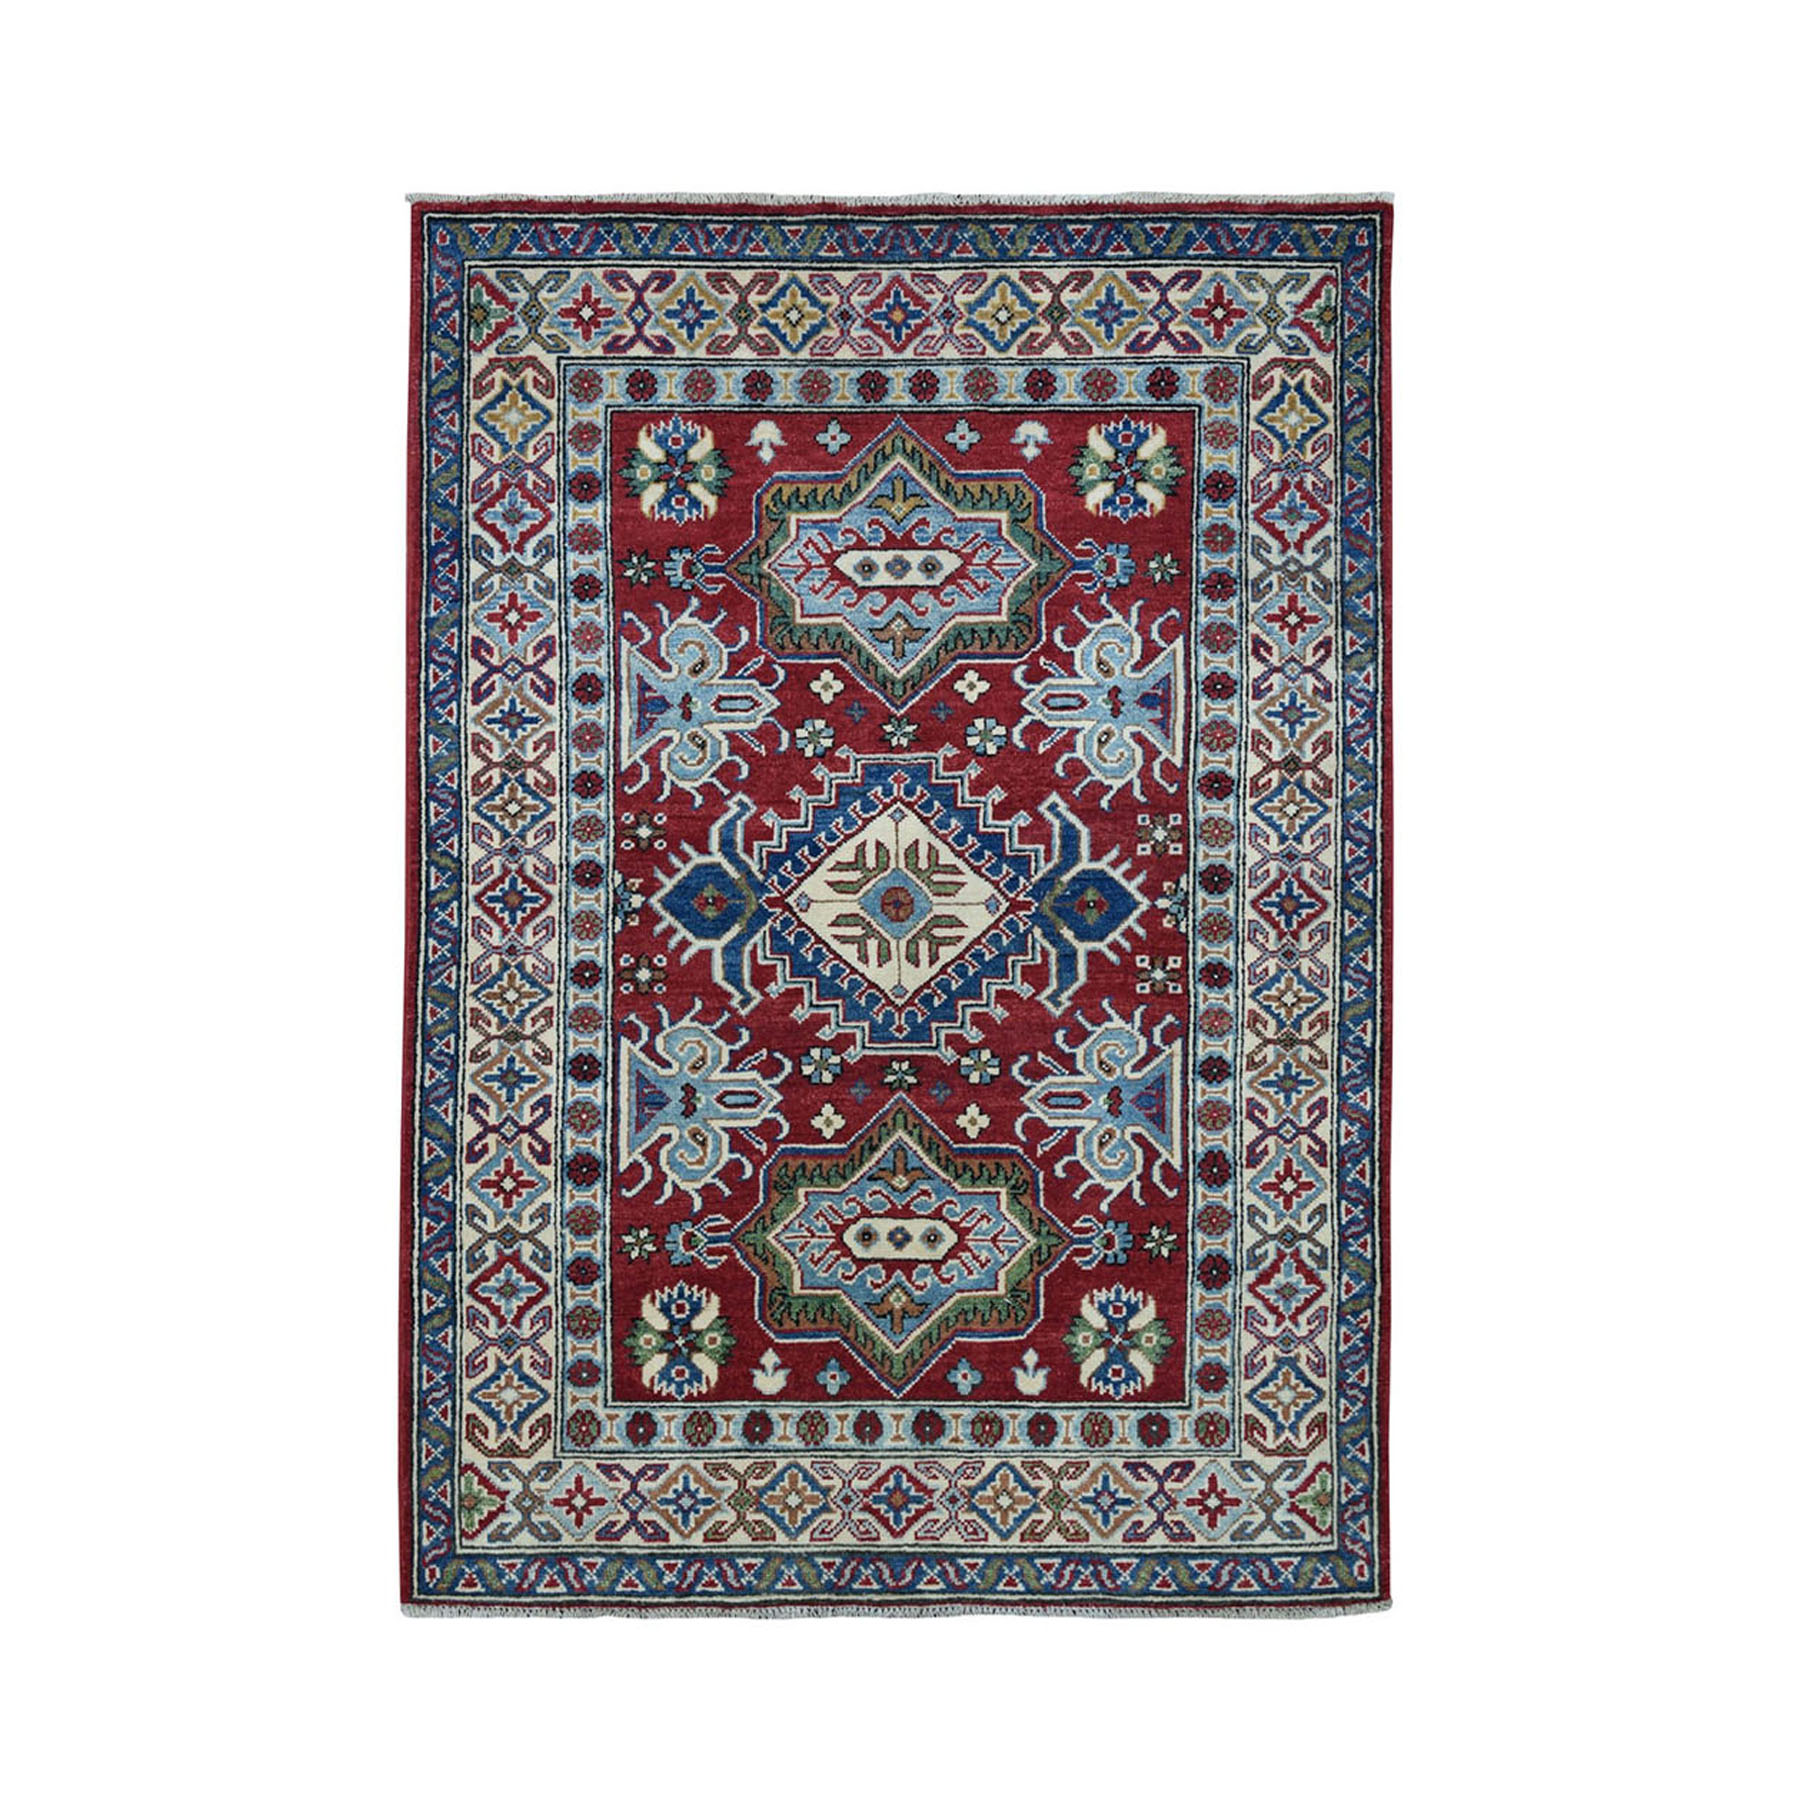 4'X6' Red Geometric Design Kazak Pure Wool Hand-Knotted Oriental Rug moae0700